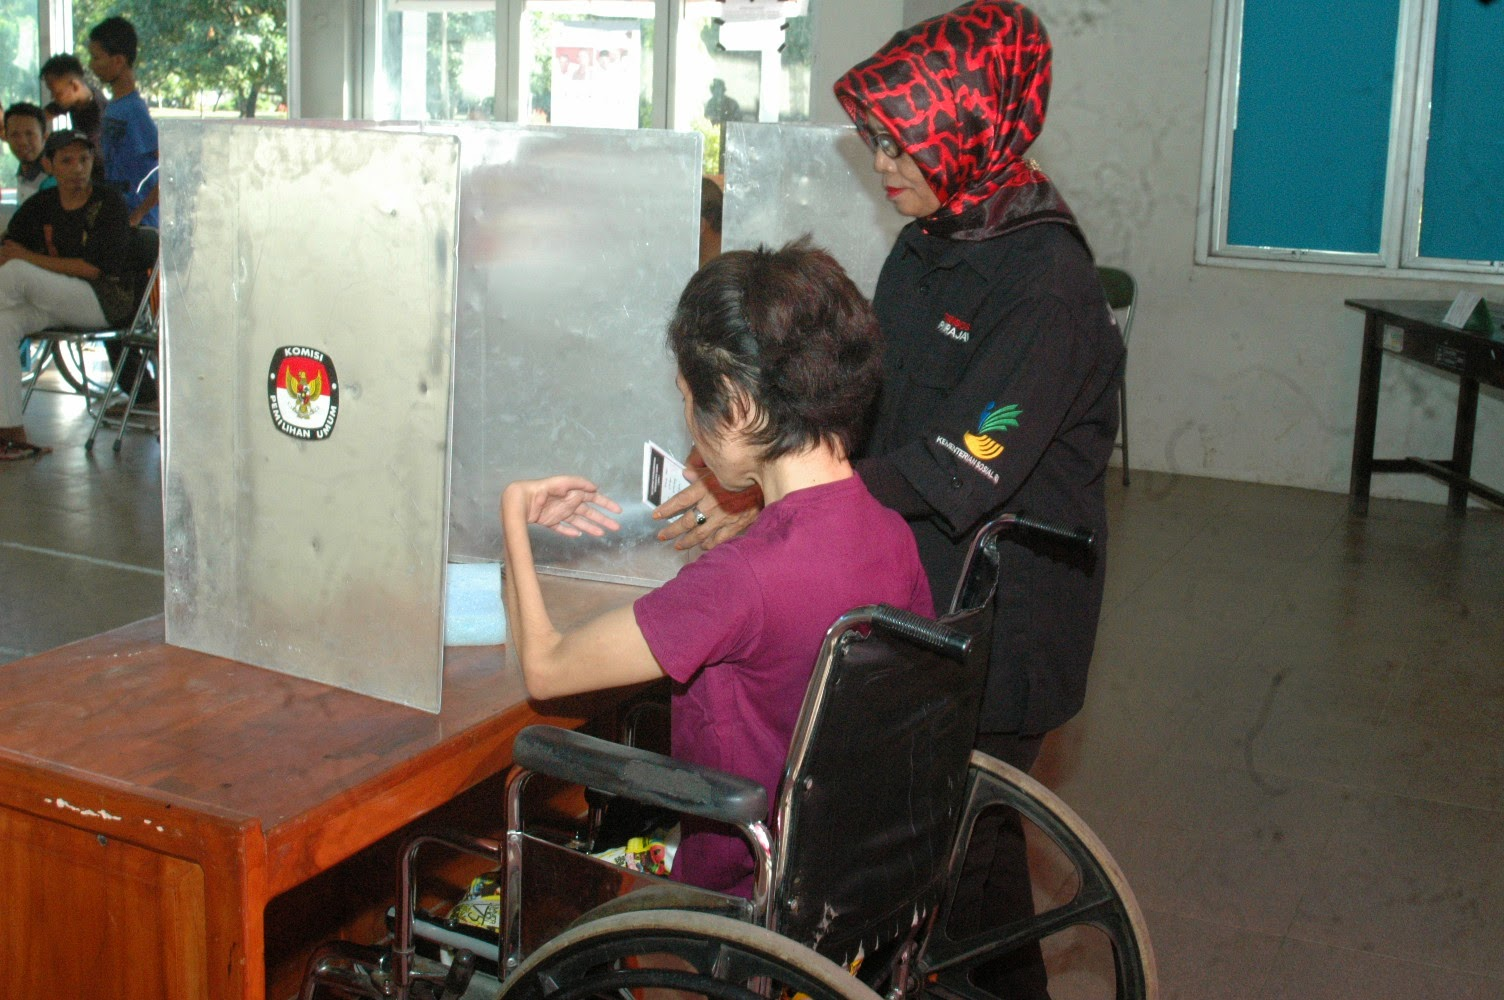 Wheelchair voter is assisted by a KPPS member in casting her vote in South Sulawesi